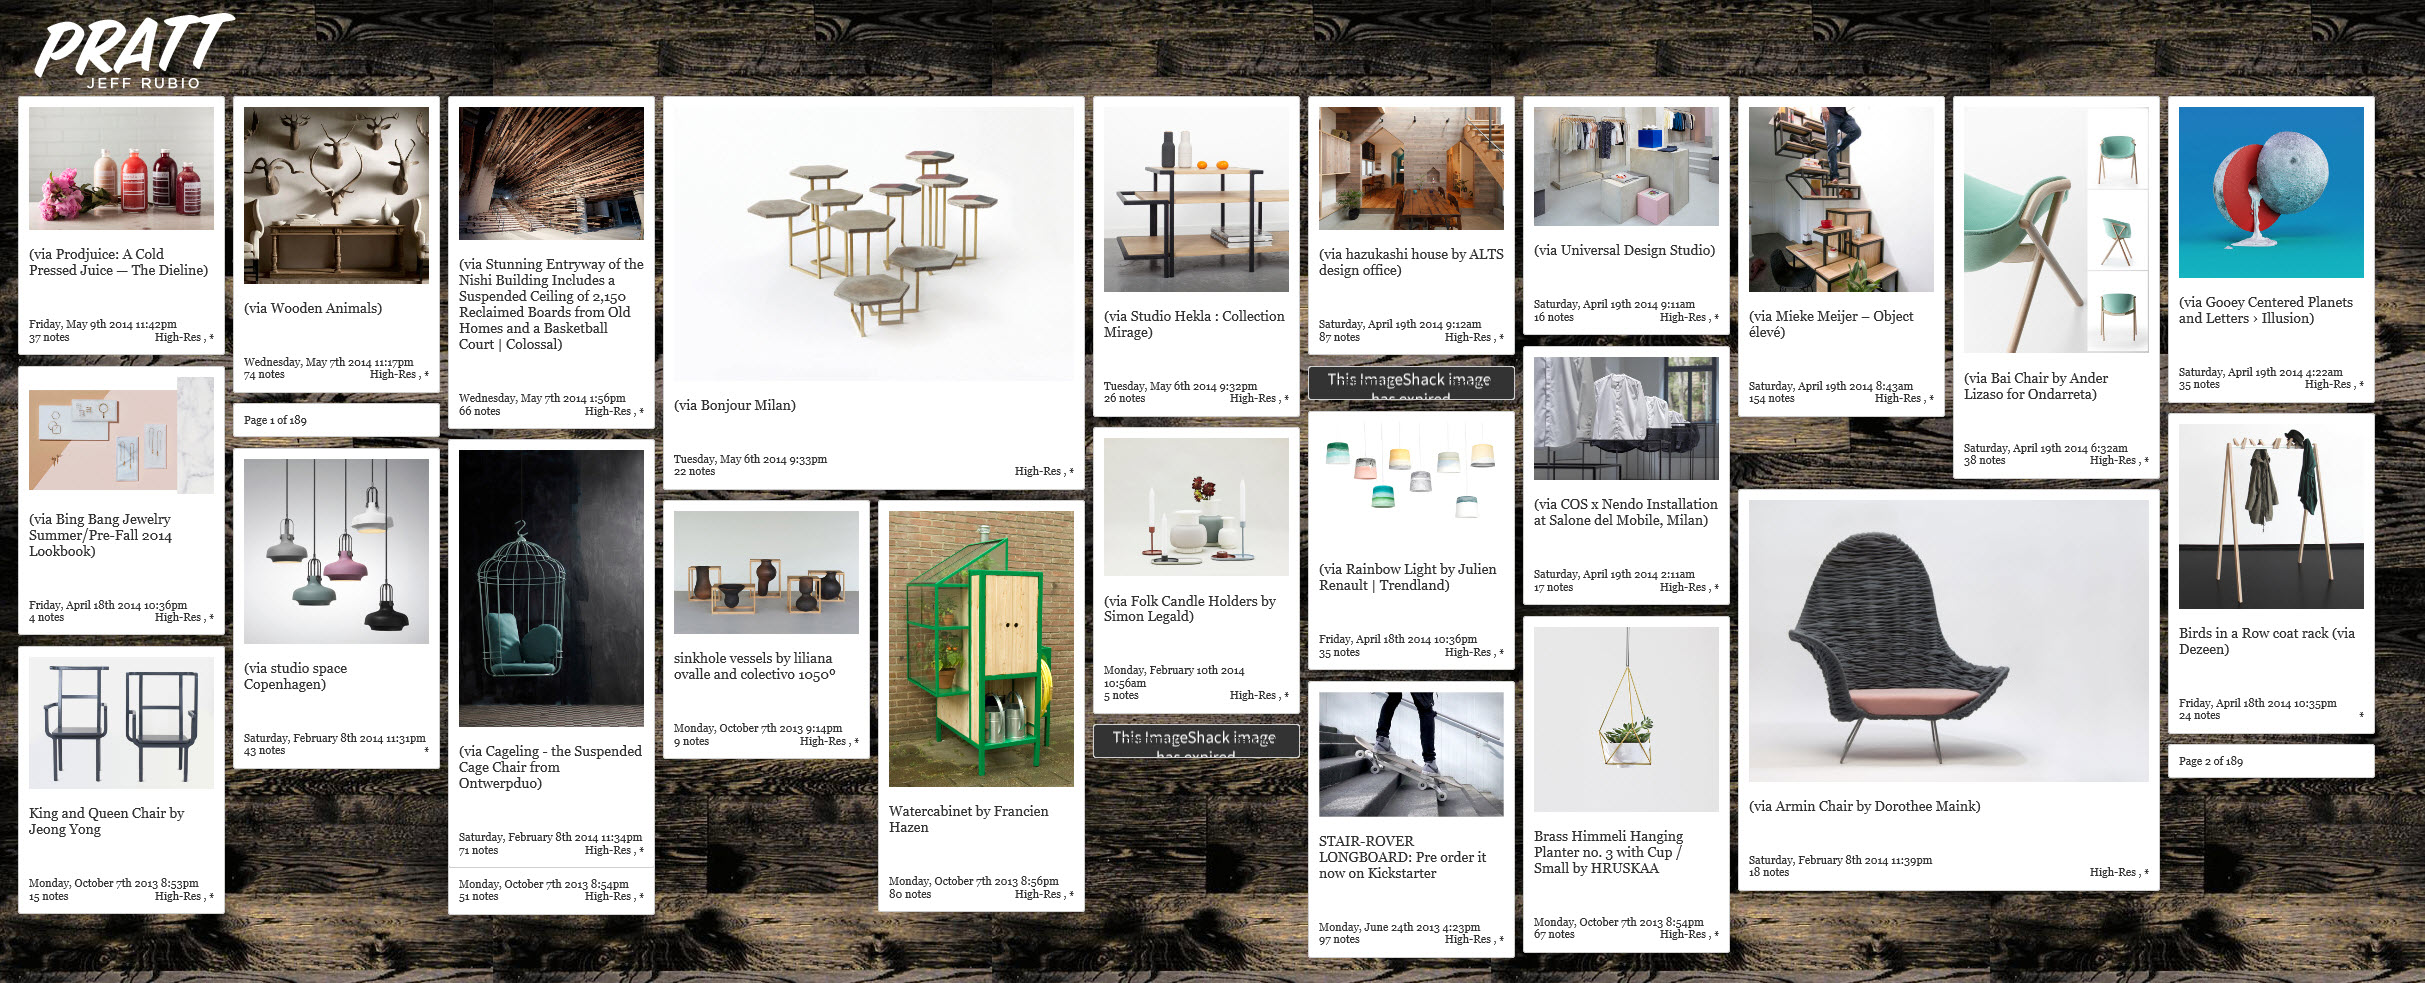 Pratt's Tumblr, managed by Jeff Rubio, a great example of double content curation